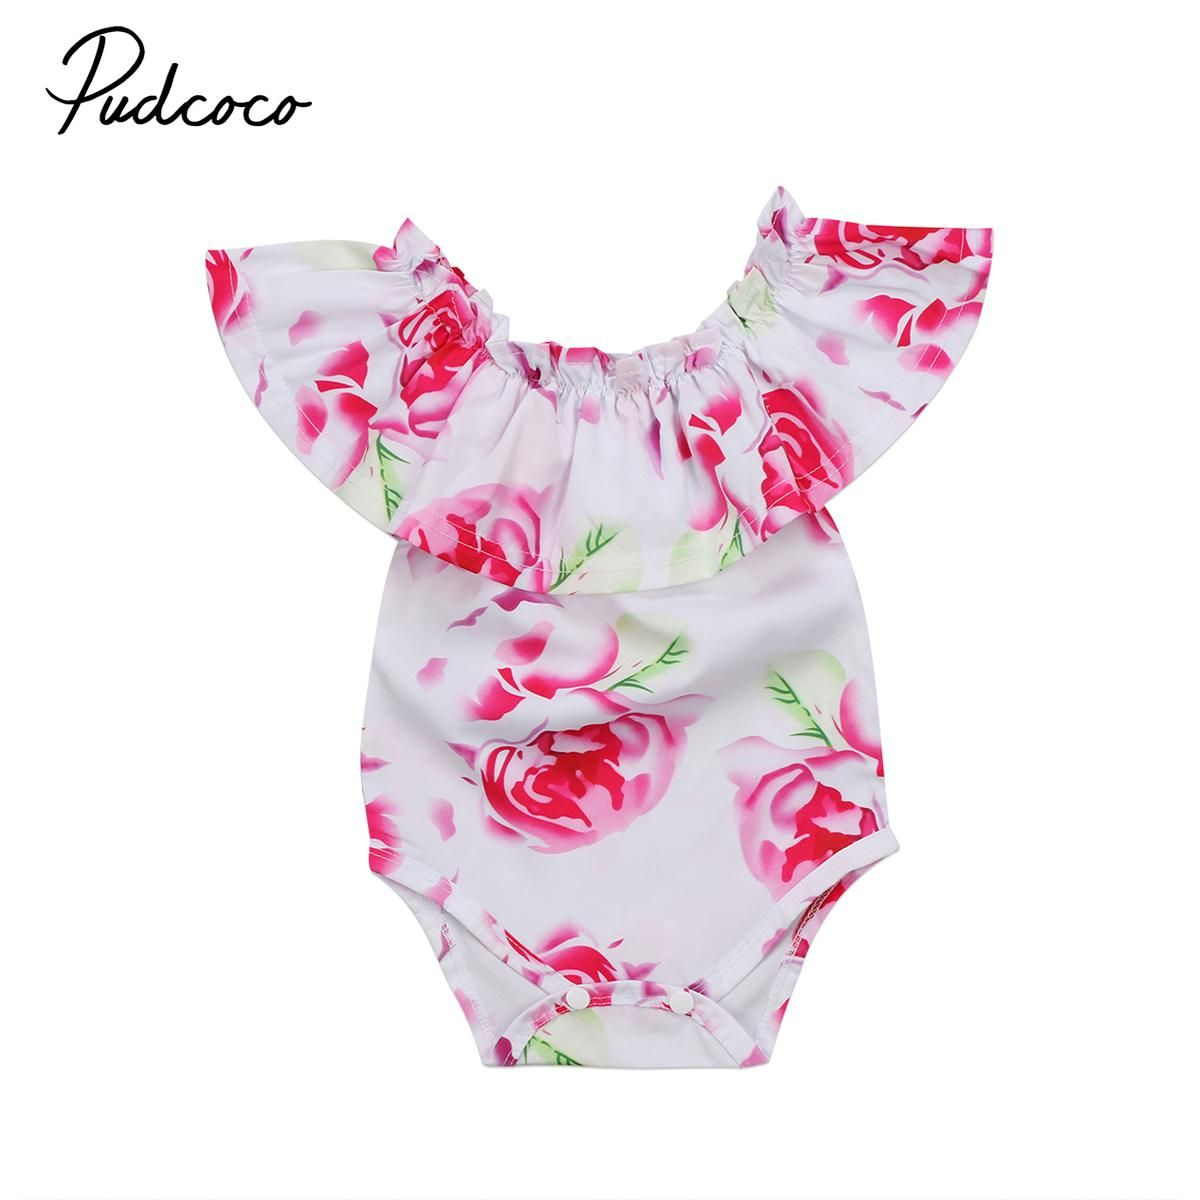 c2190b7e33d4 Cute Summer Newborn Baby Girls Floral Romper Jumpsuit Playsuit Clothes  Ruffle Sleeveless One-Piece Cotton. Yesterday s price  US  4.57 (3.92 EUR).